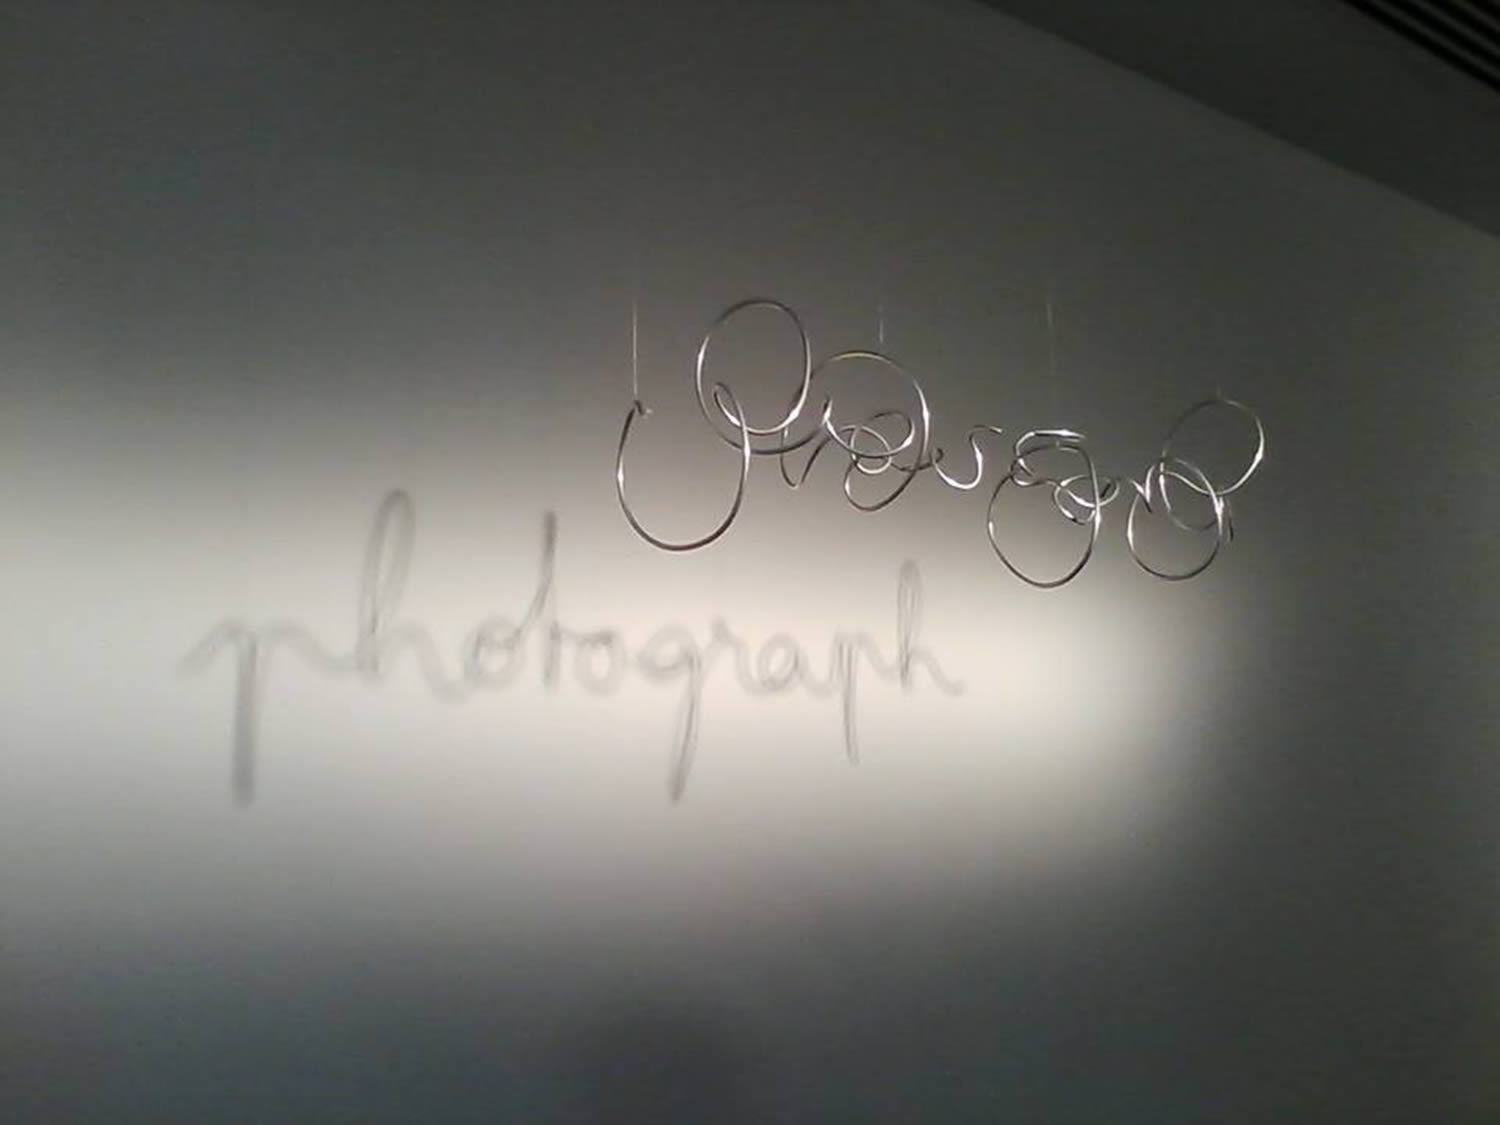 the word photograph on wall, fred eerdekens